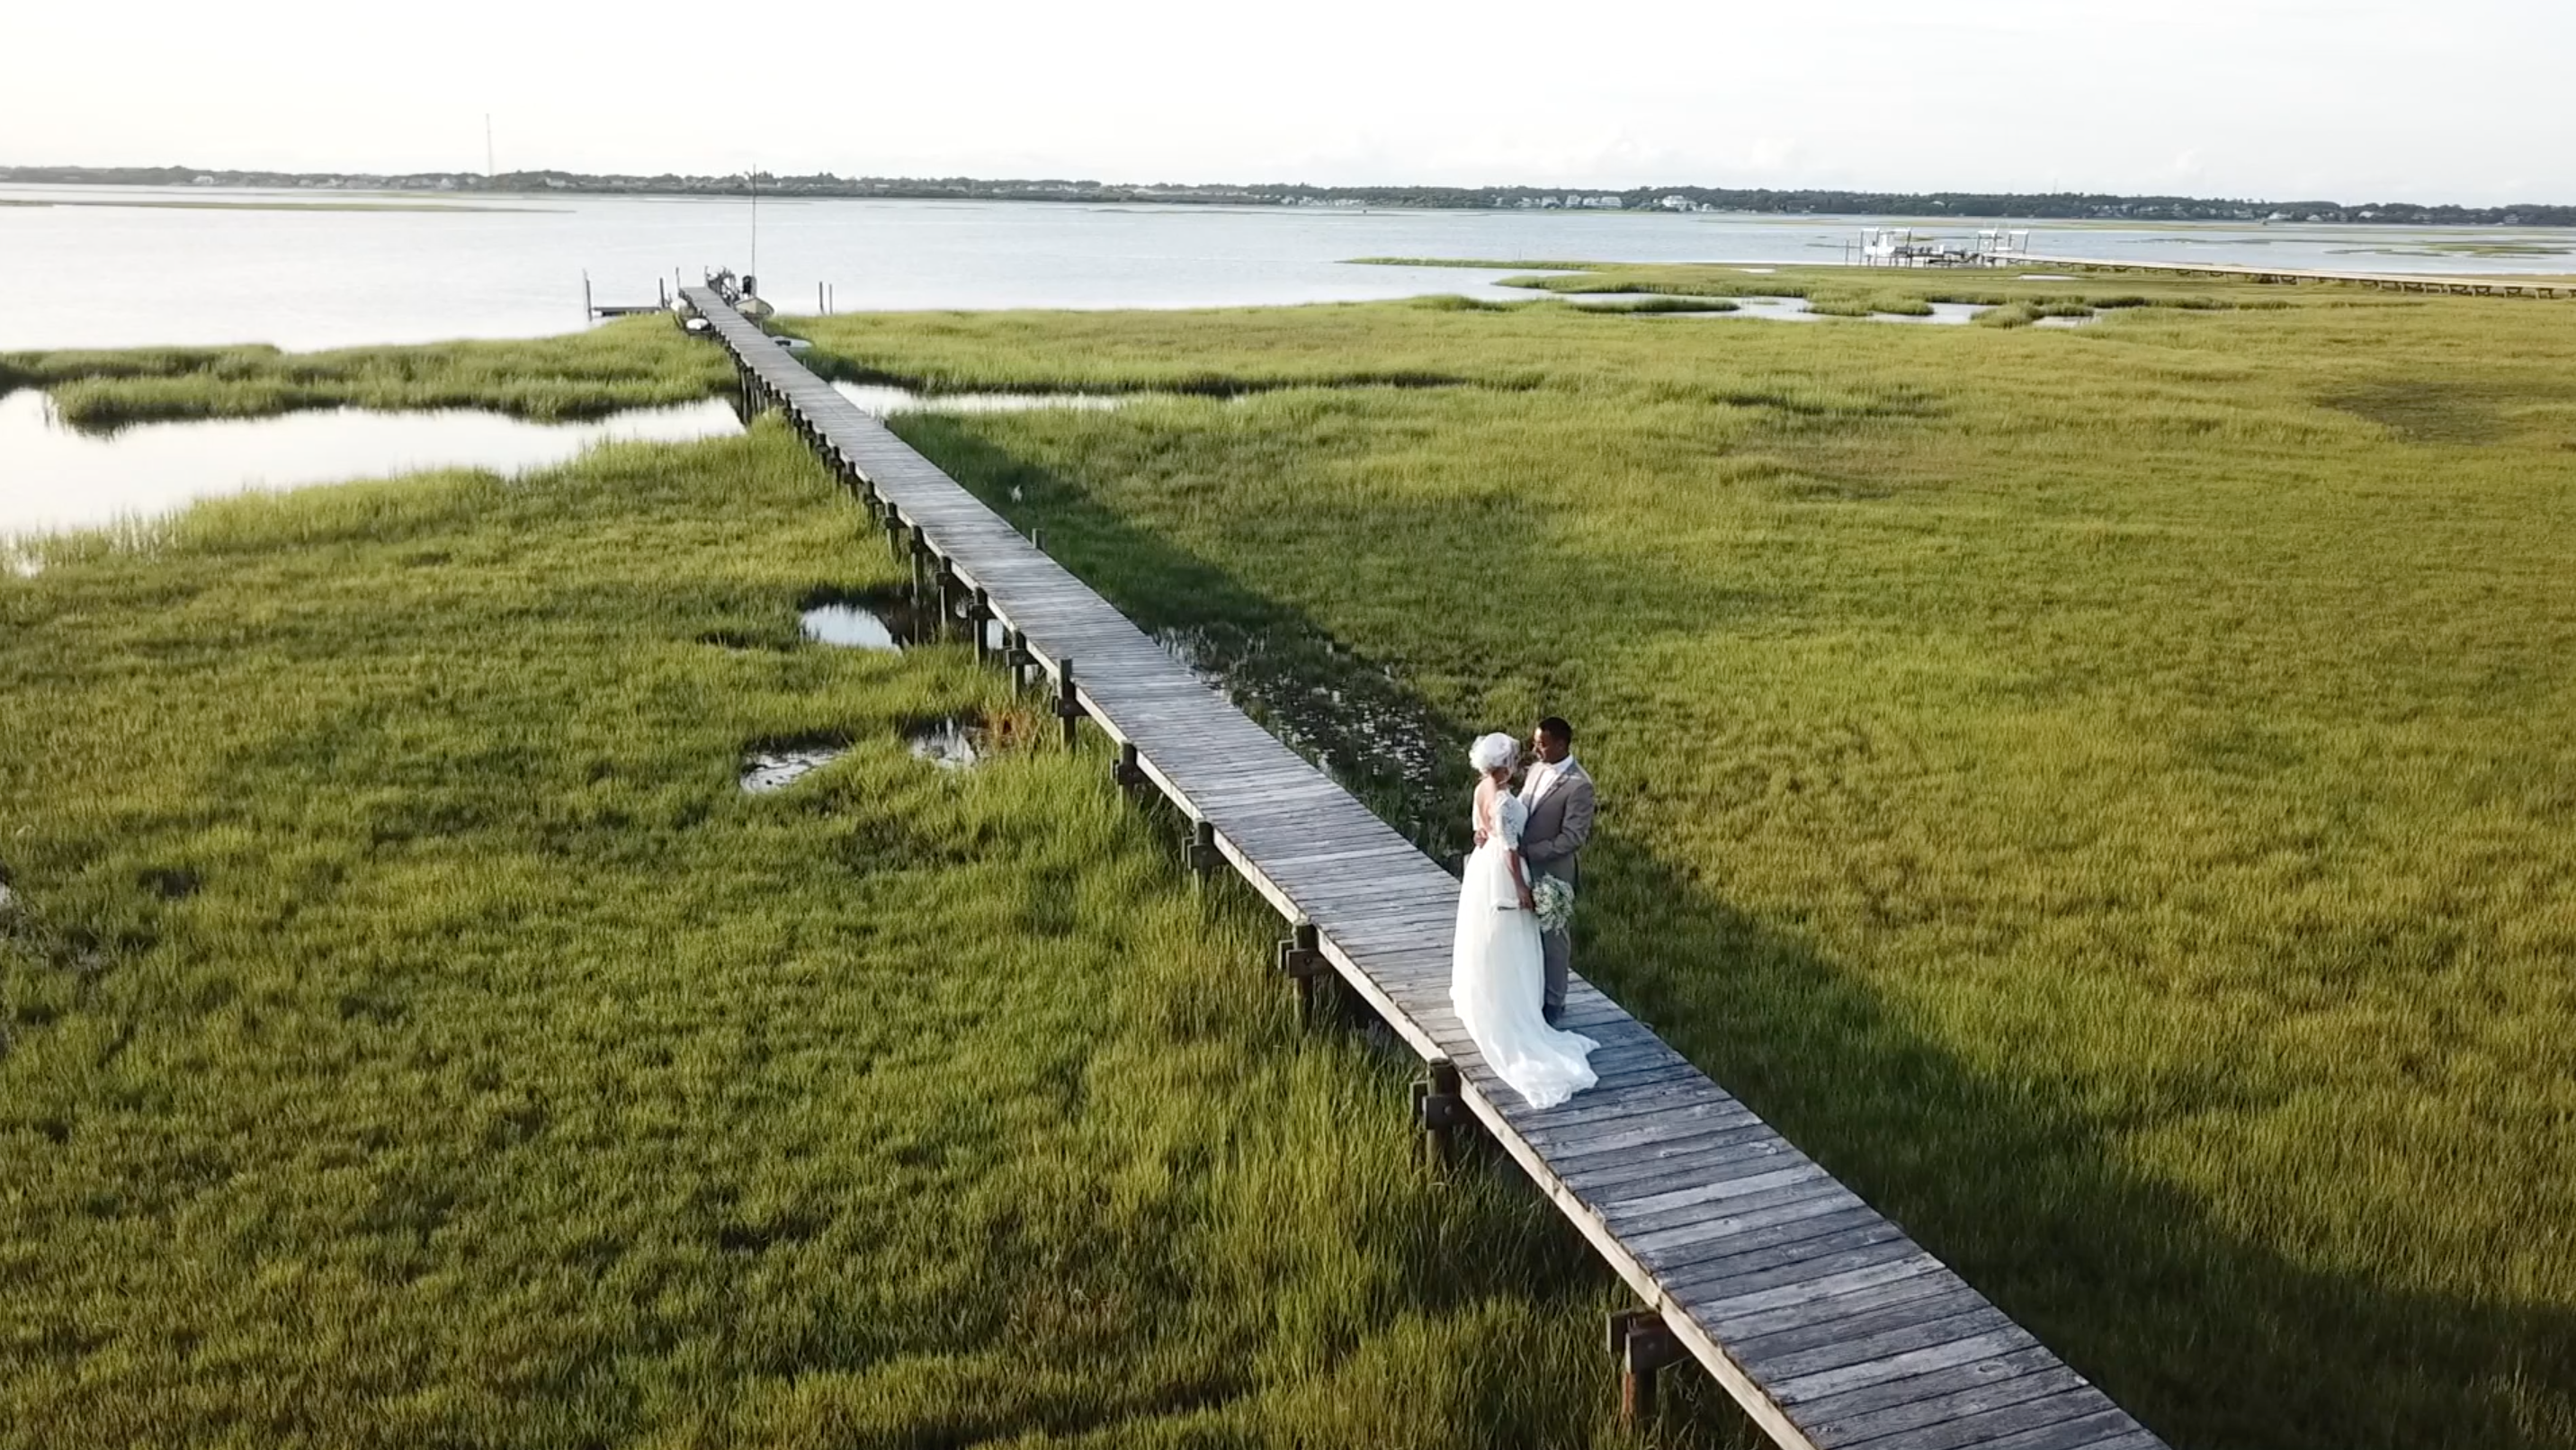 Olivia + Sunil | Emerald Isle, North Carolina | The Watson House